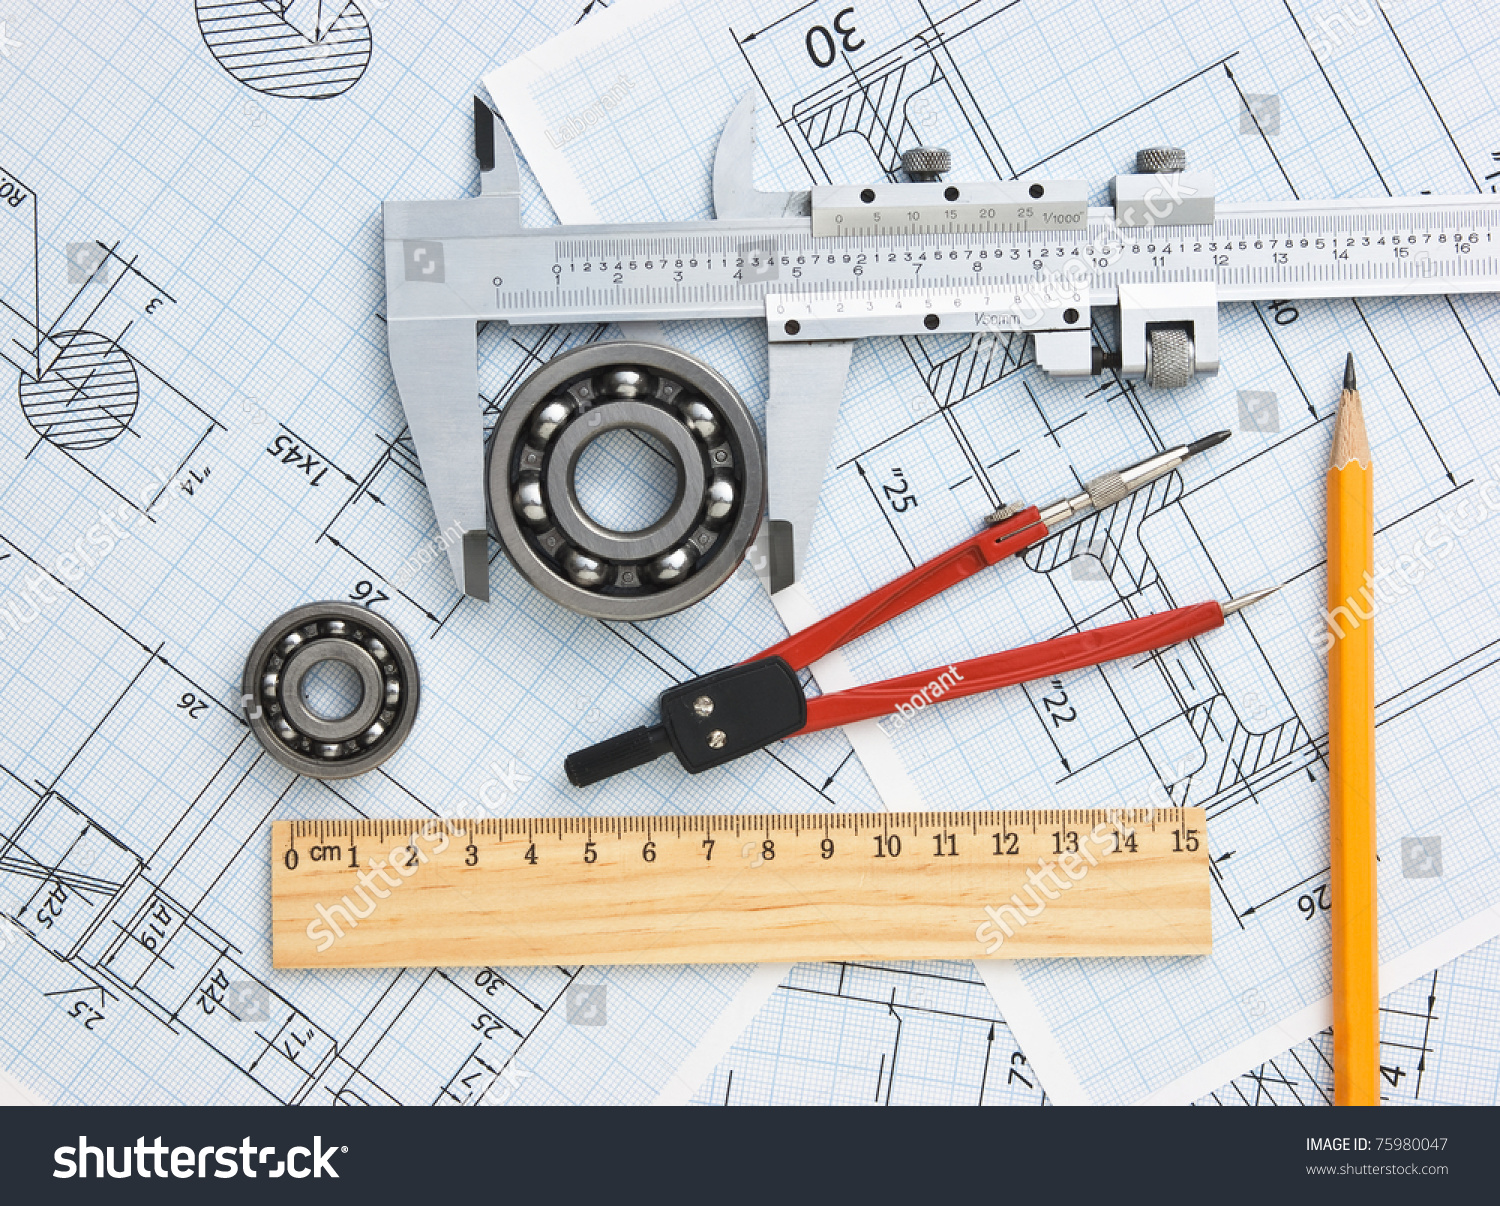 Technical Drawing Tools Stock Photo (Download Now) 75980047 ...